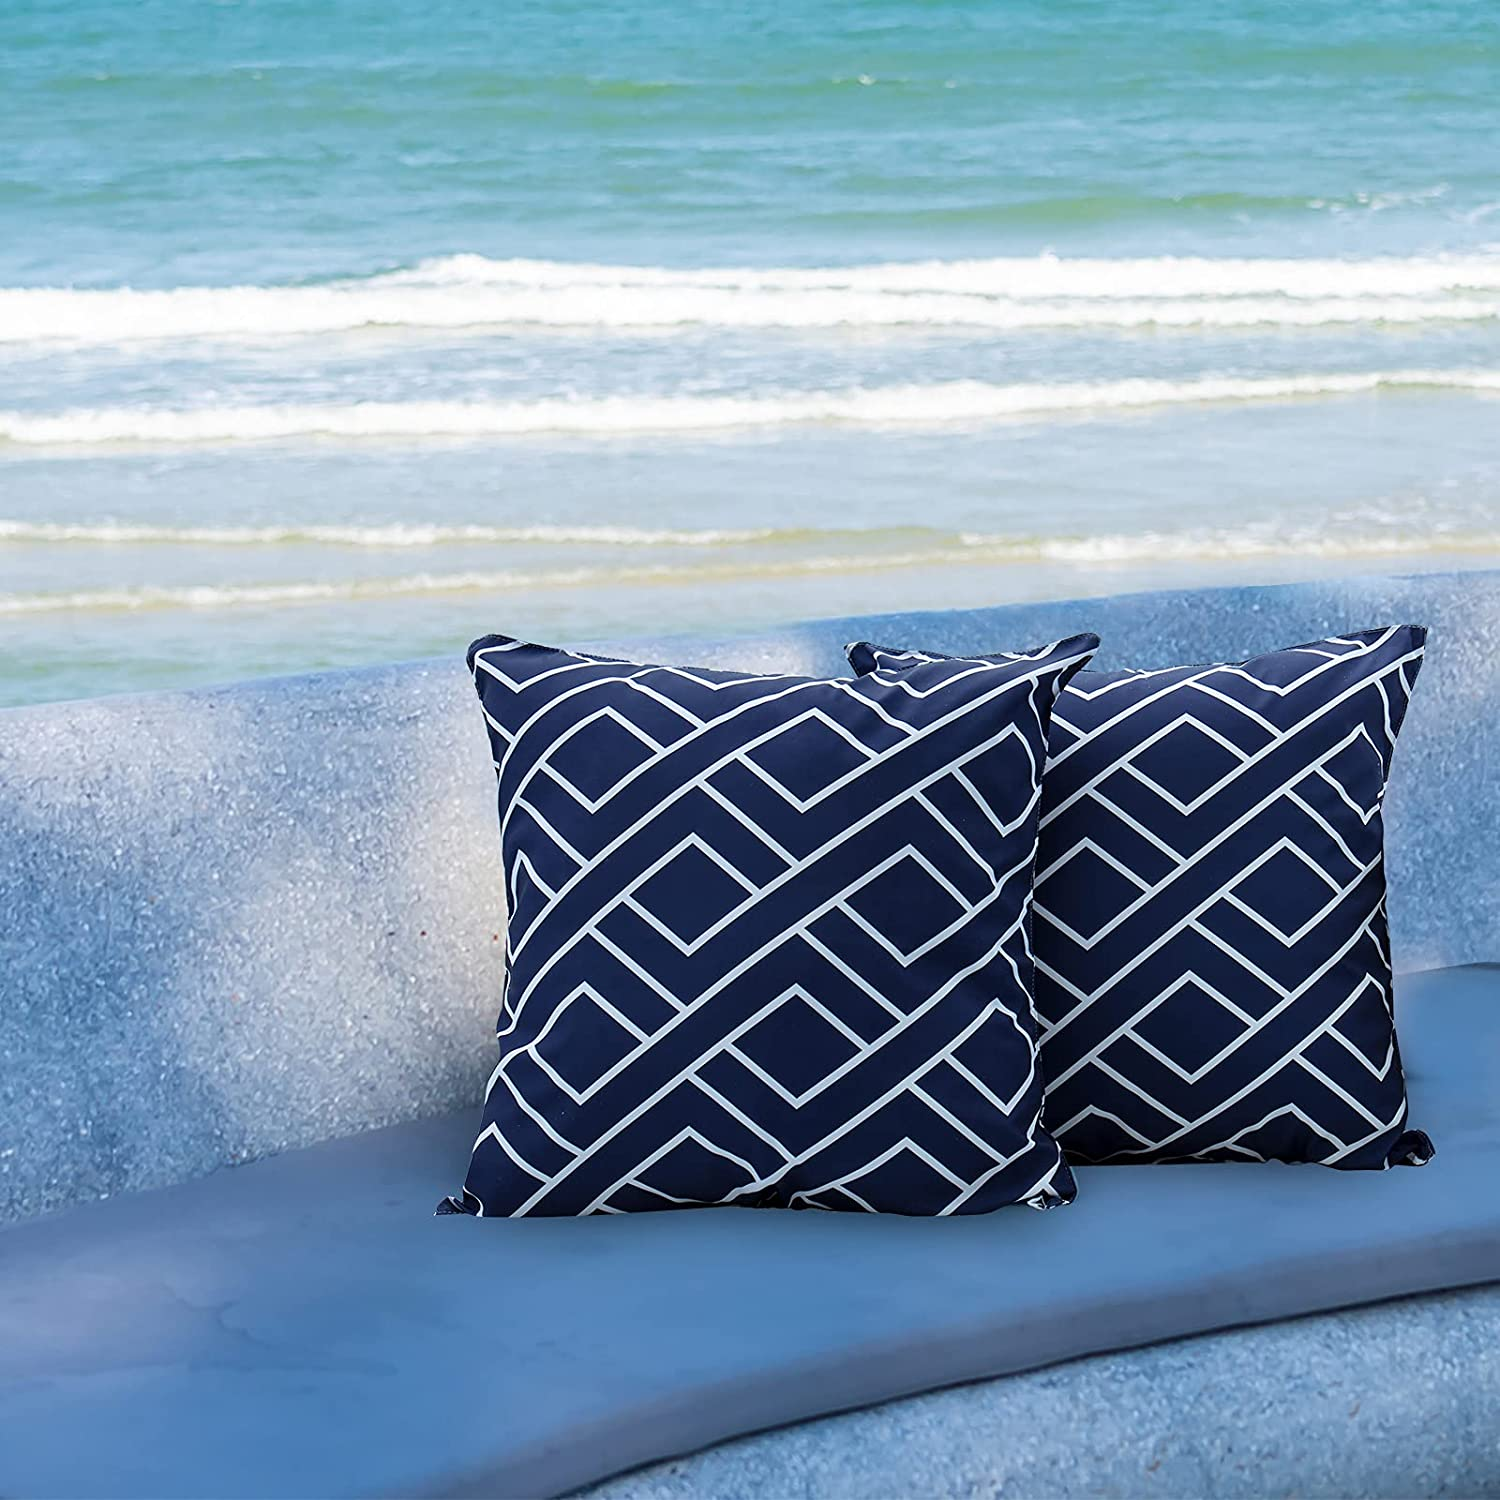 [Ultra Water Resistant]Bonlino Pack of 2 Decorative Outdoor Patio Waterproof Throw Pillow Covers Garden Cushion Sham Pillowcase Shell for Patio Furniture and Sunbrella 18x18 Inch ( Blue Weave pattern)